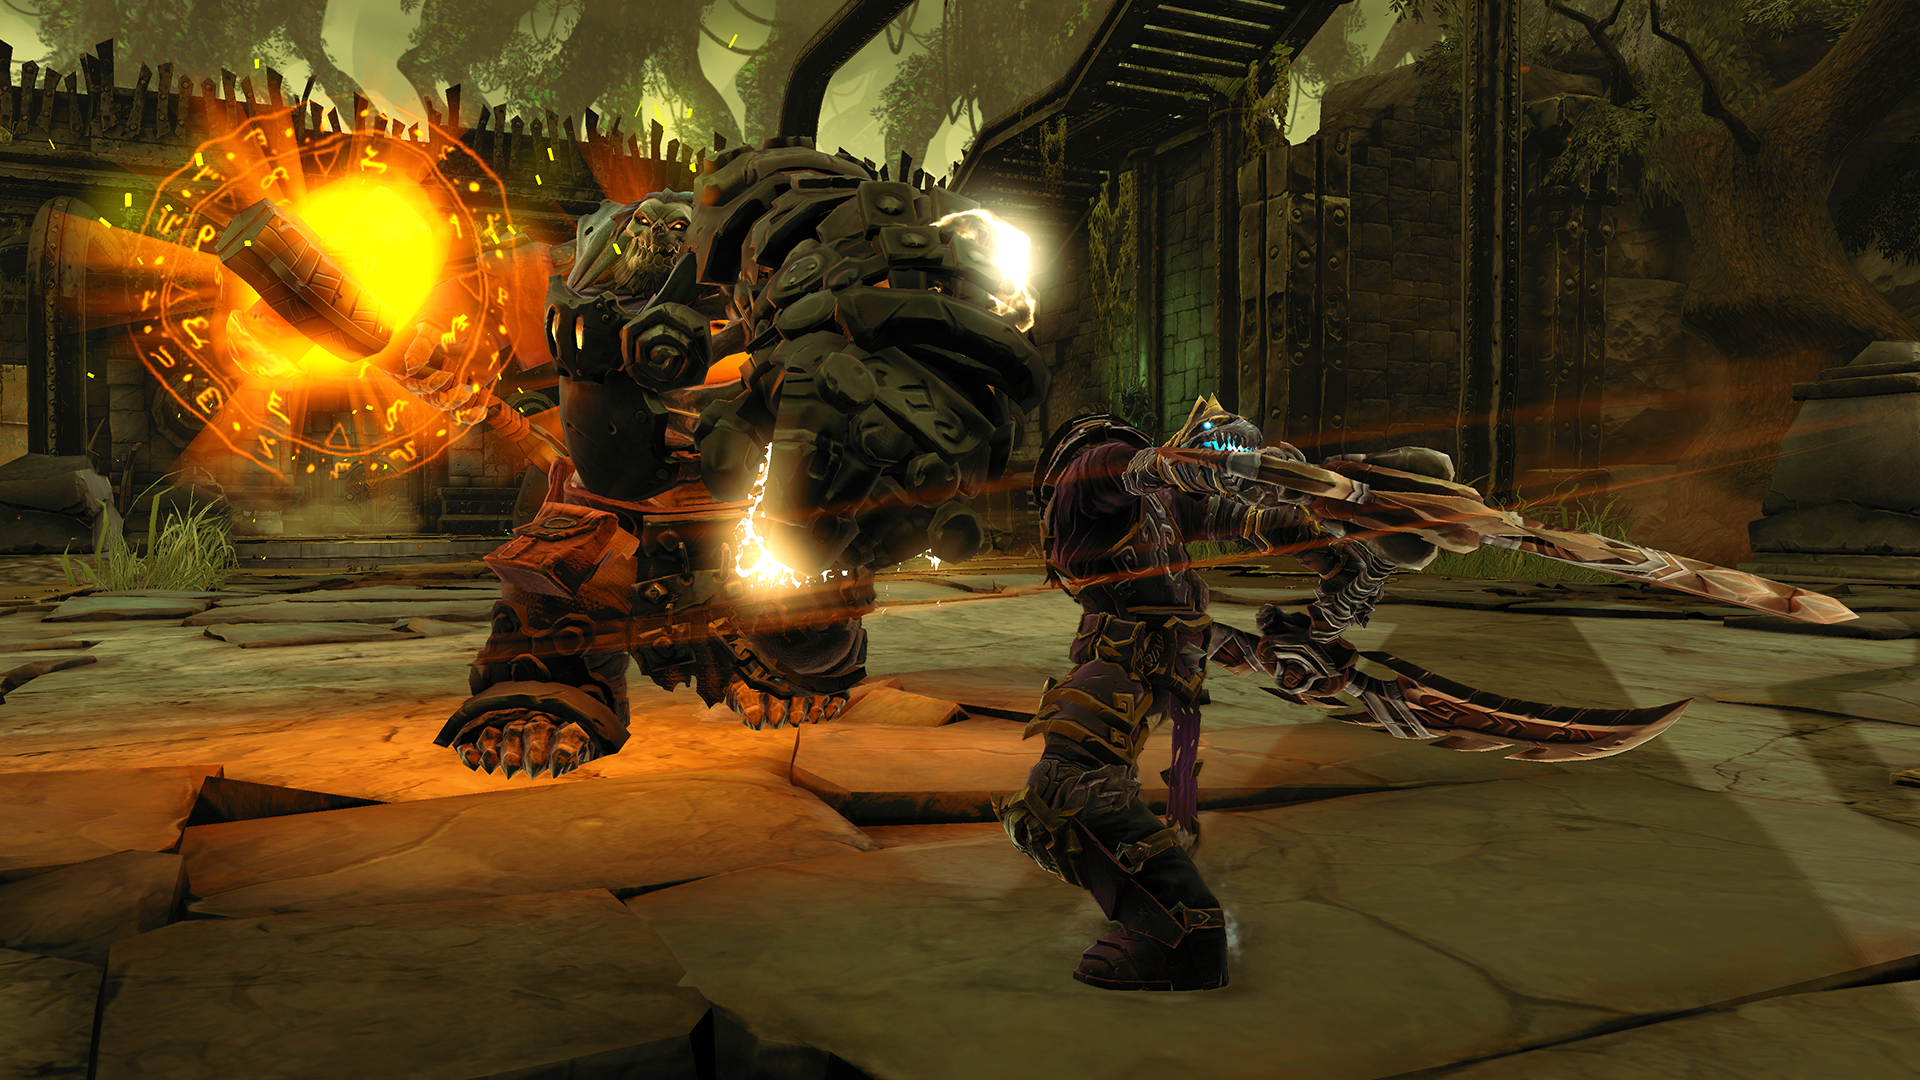 Darksiders II Deathinitive Edition image 1